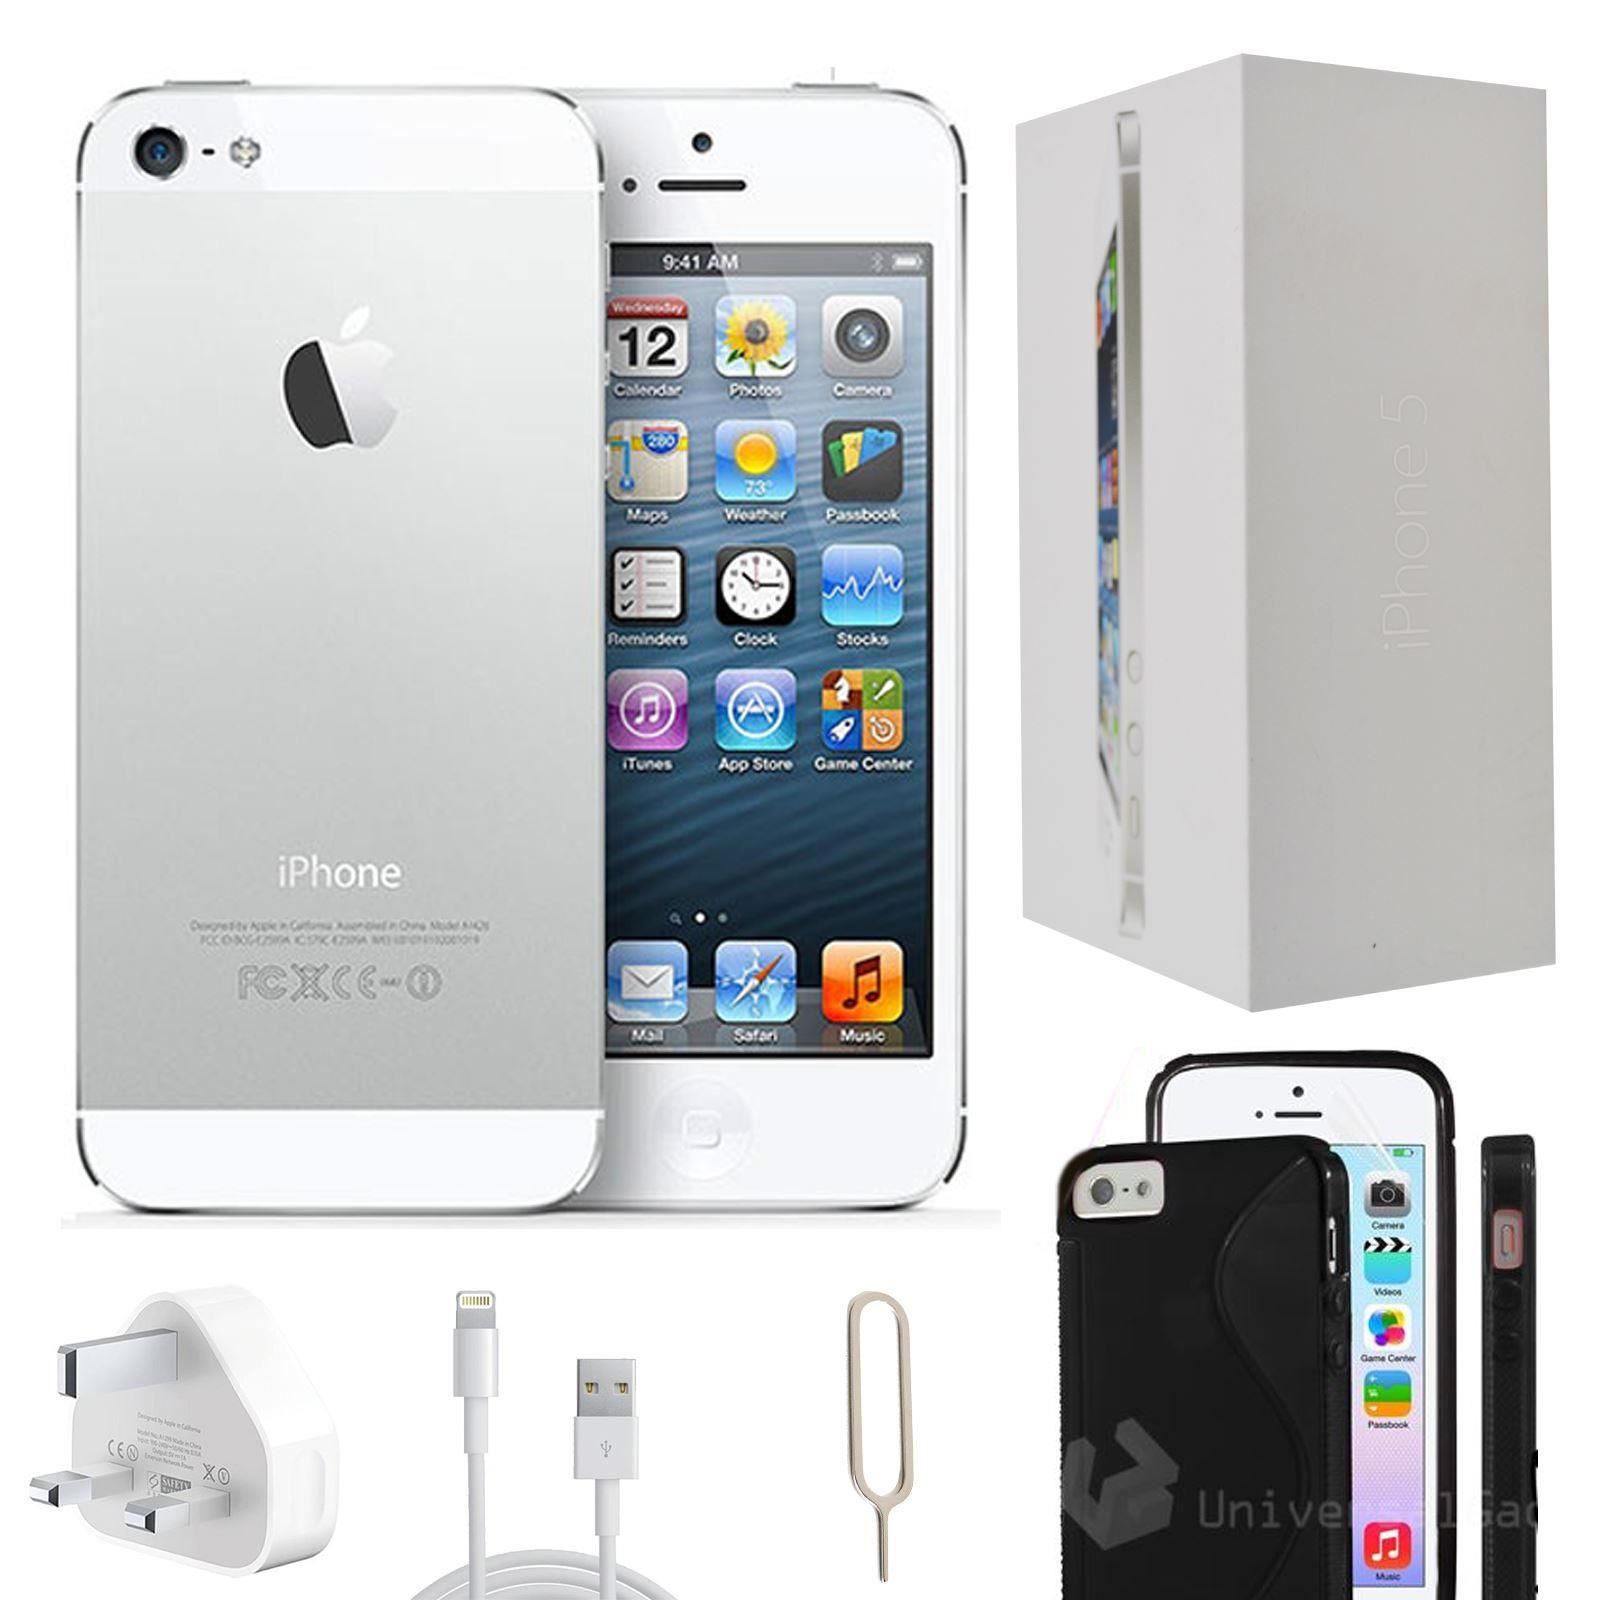 apple iphone 5 32gb white unlocked refurbished grade a accessories 885909637331 ebay. Black Bedroom Furniture Sets. Home Design Ideas